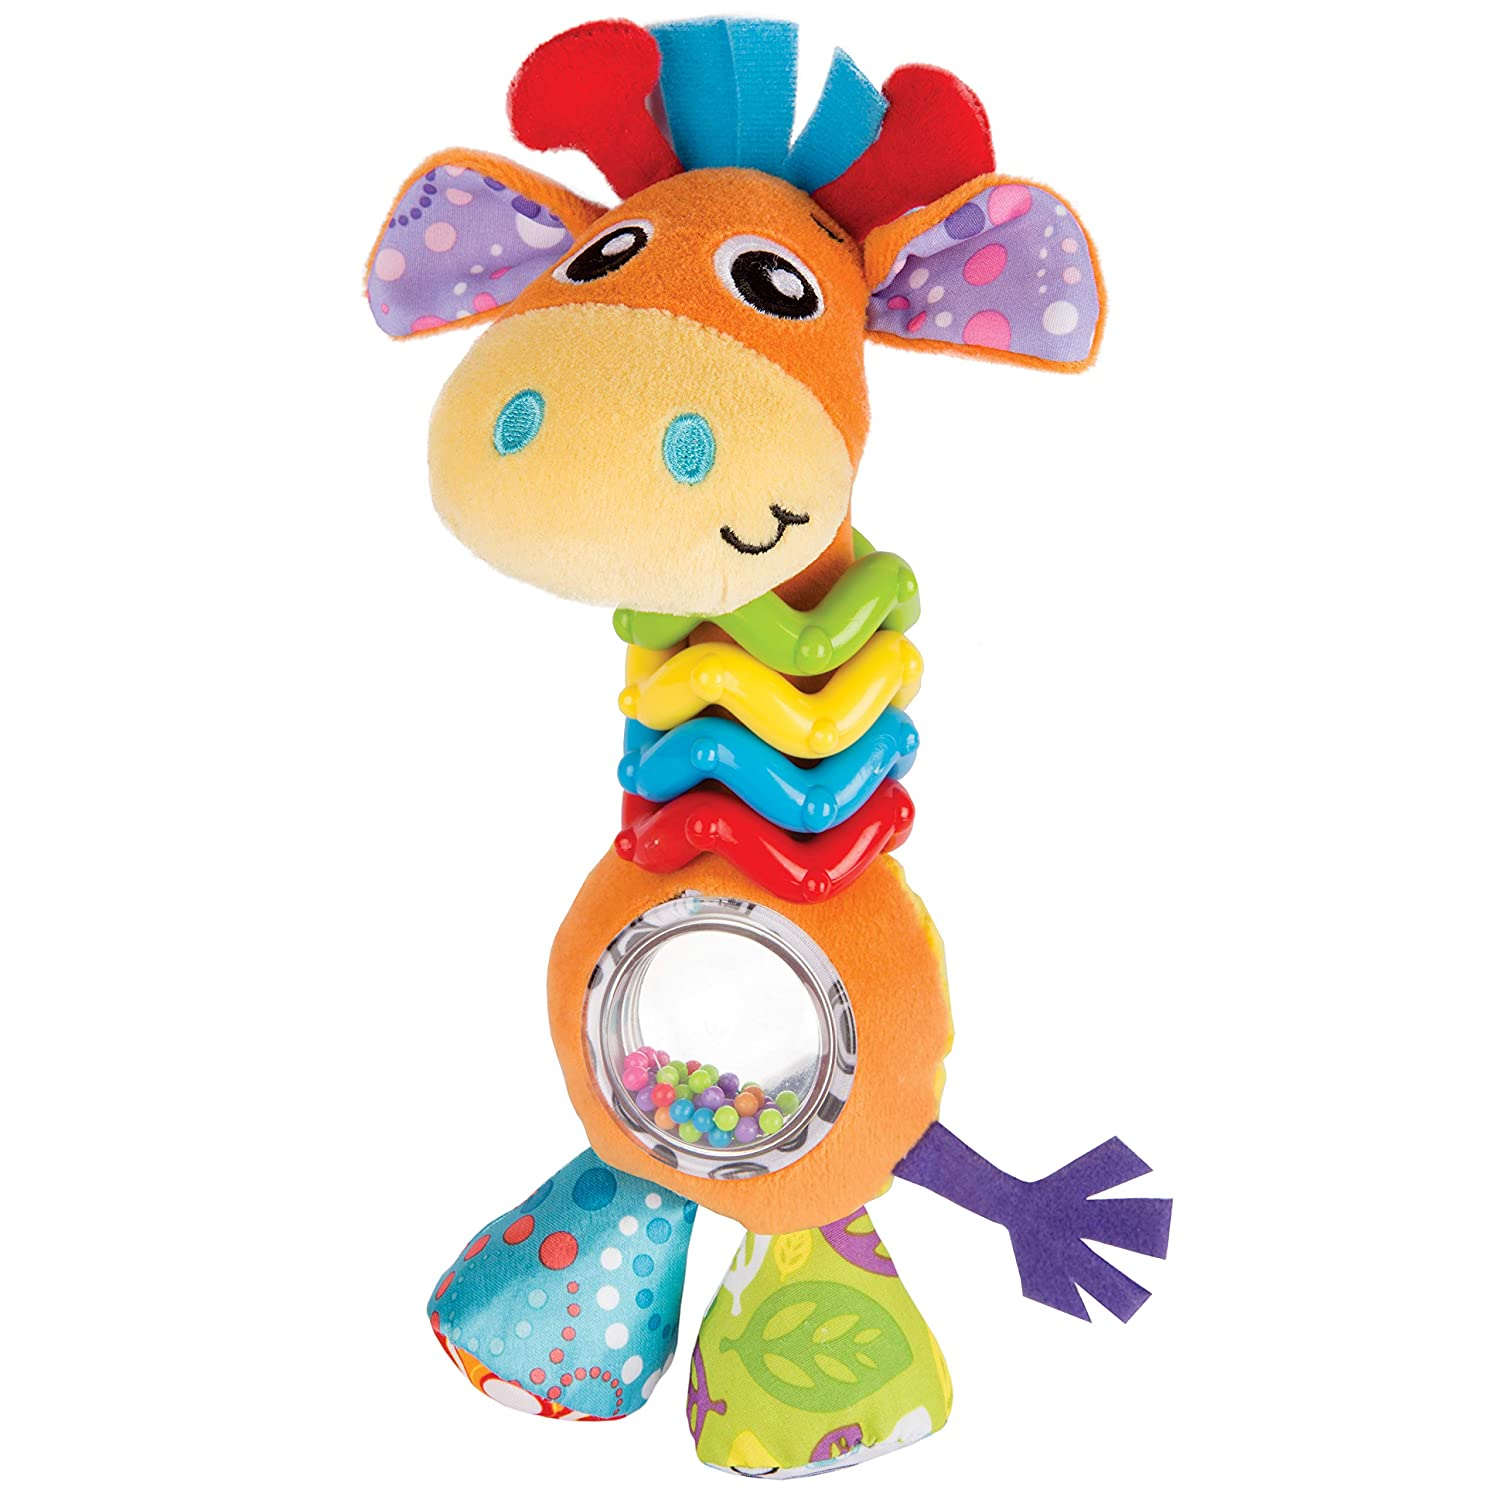 Top 9 Best Baby Rattles Reviews in 2021 3